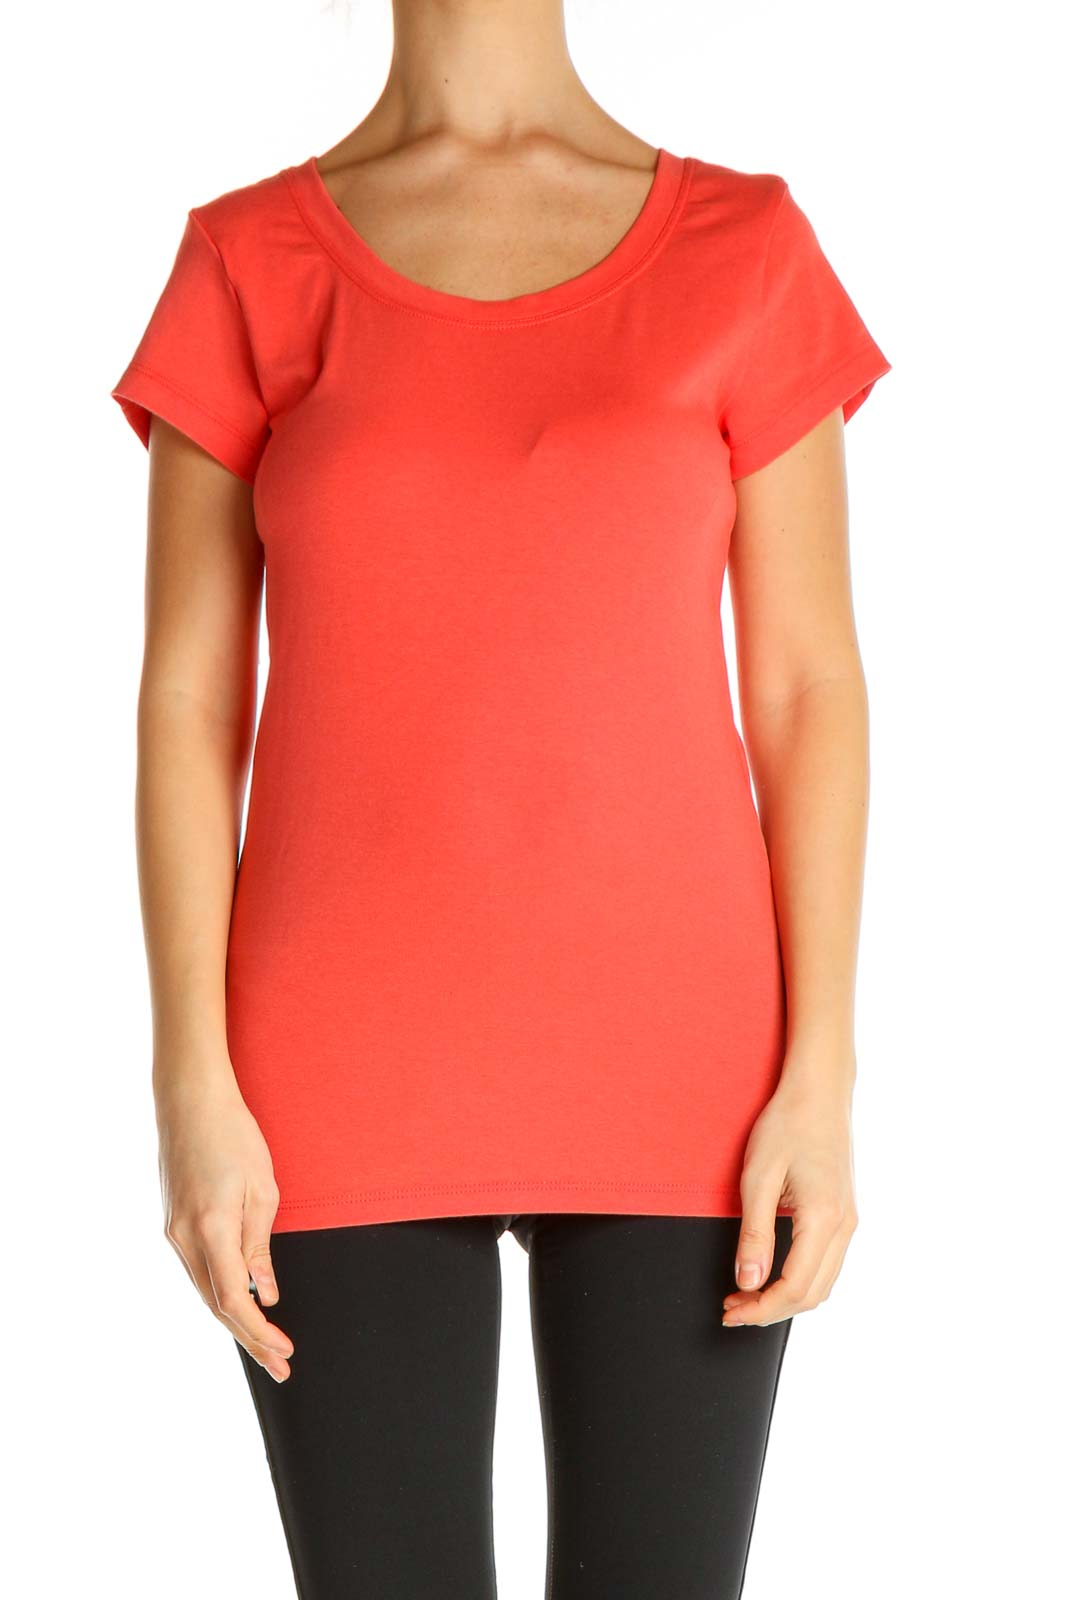 Orange Solid All Day Wear T-Shirt Front